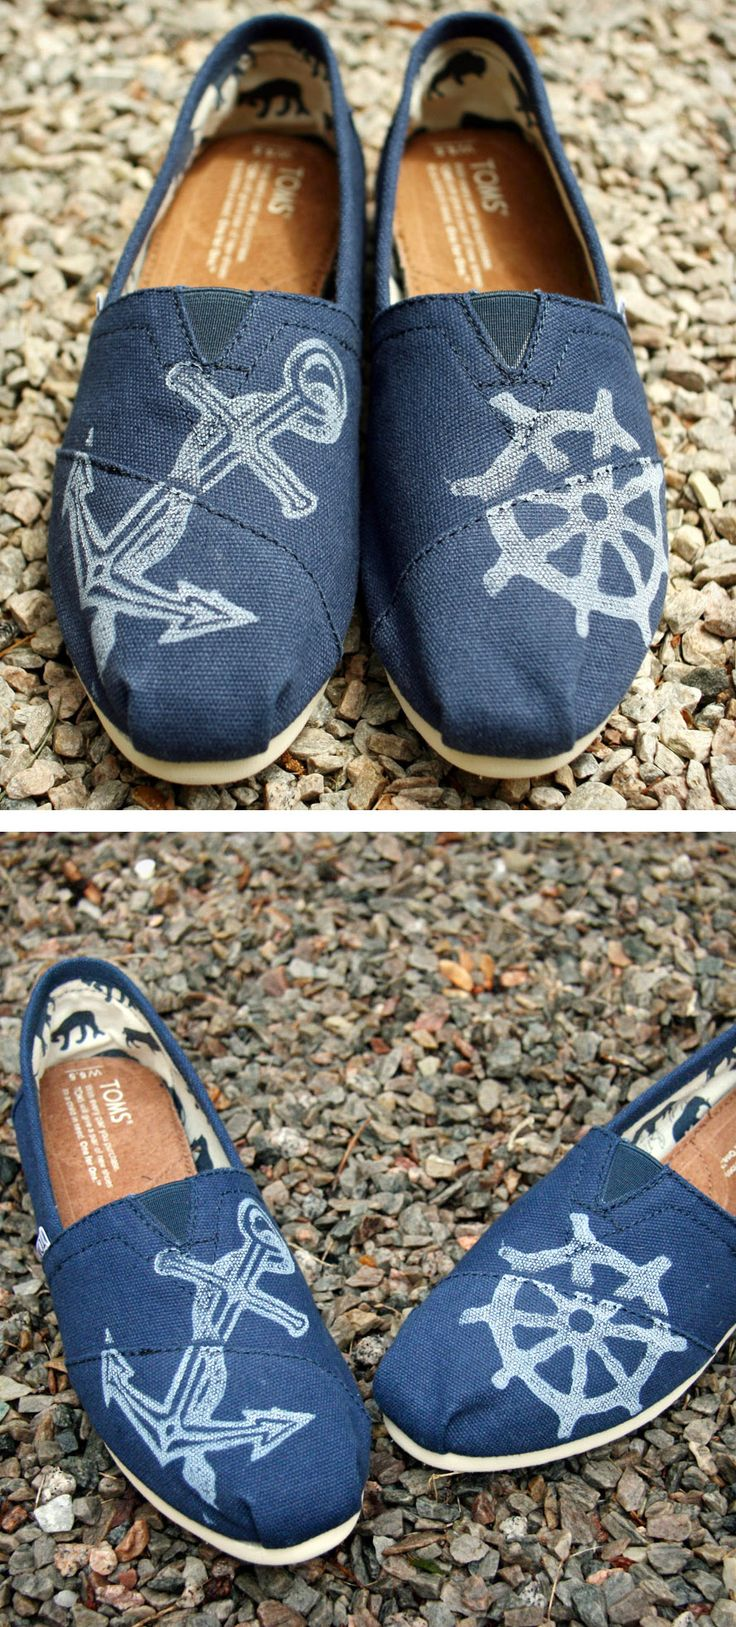 Nautical Toms - would be cute for a cruise!